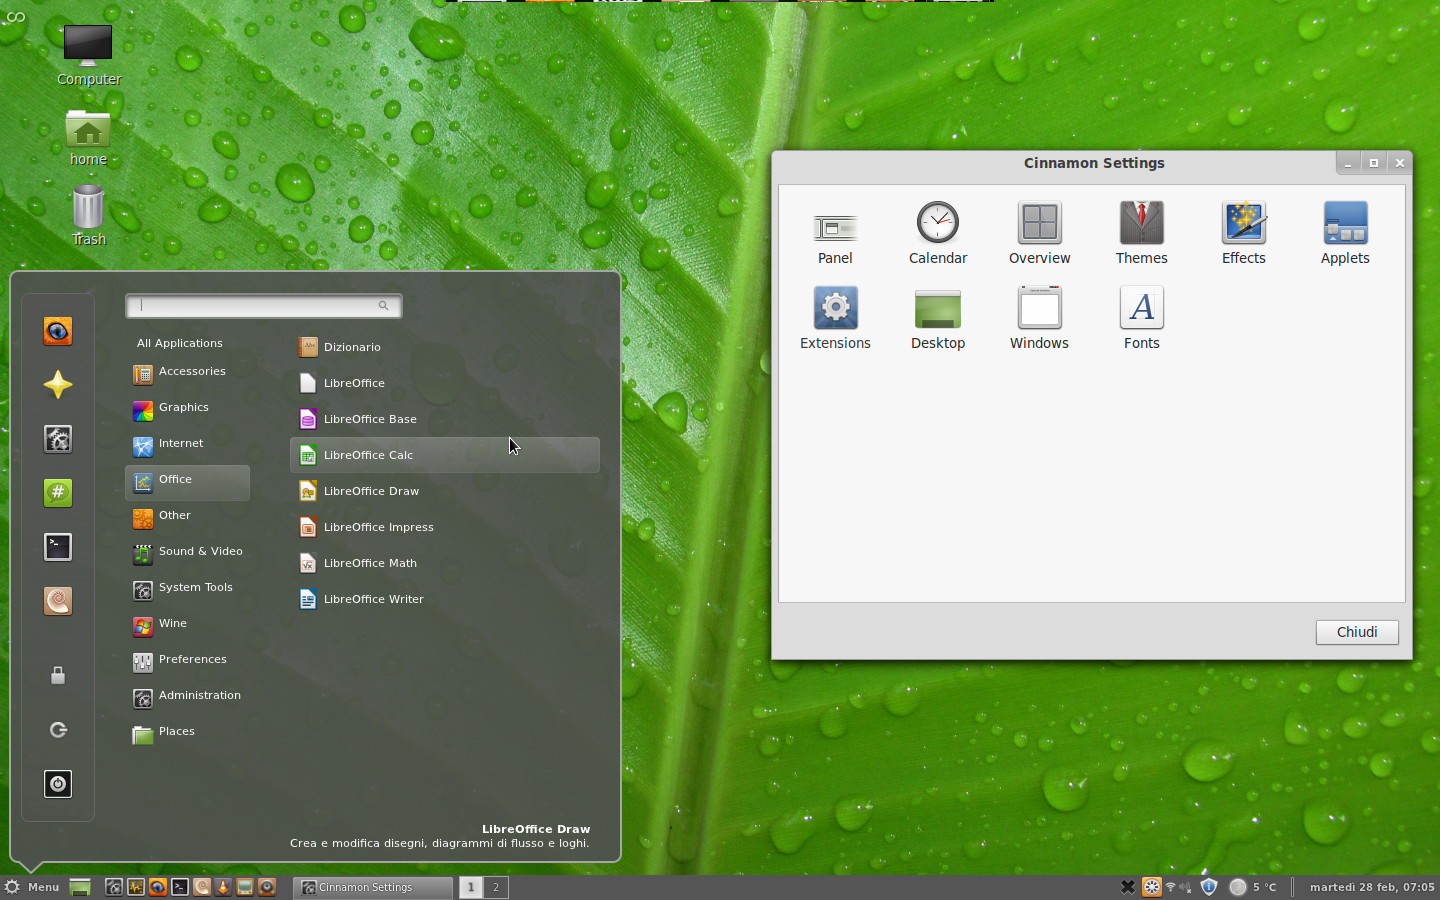 File:Linux Mint 12 with Cinnamon.png - Wikimedia Commons